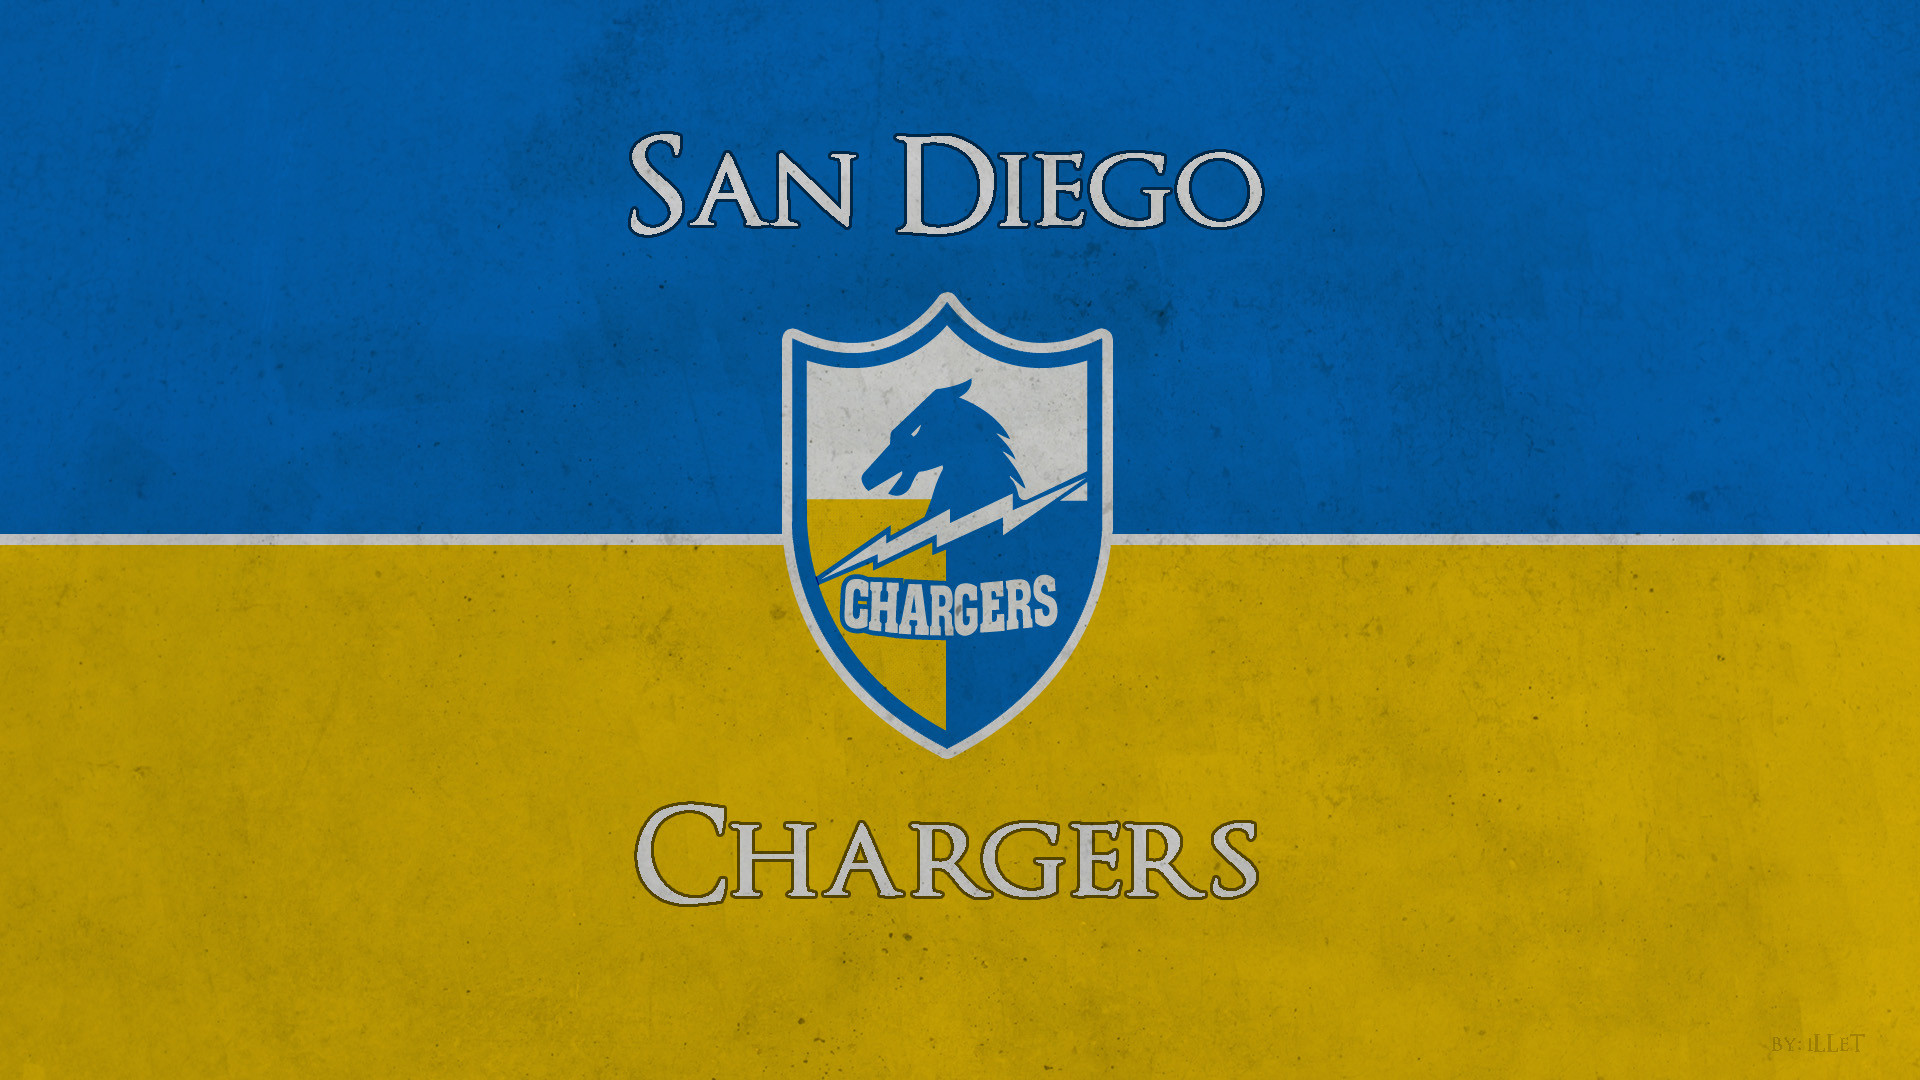 San-diego-chargers-wallpaper-simple-cool